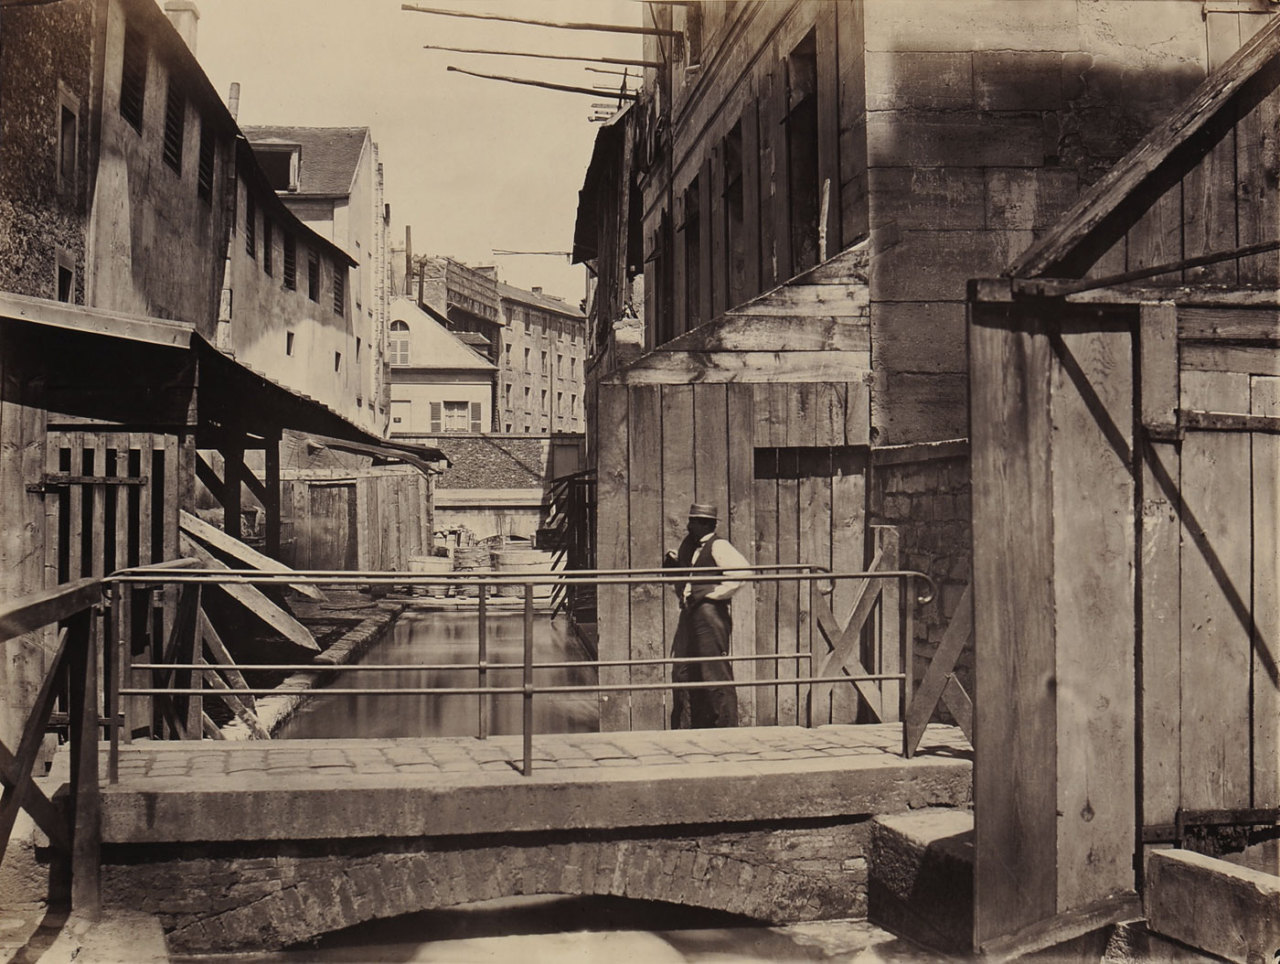 Charles Marville 24, Rue Bièvre, Paris1865-1869 Albumin print 27.4 x 36.6 cm Collection Thomas Walther (via Exhibition: 'Concrete – Photography and Architecture' at Fotomuseum Winterthur, Zurich | Art Blartから)